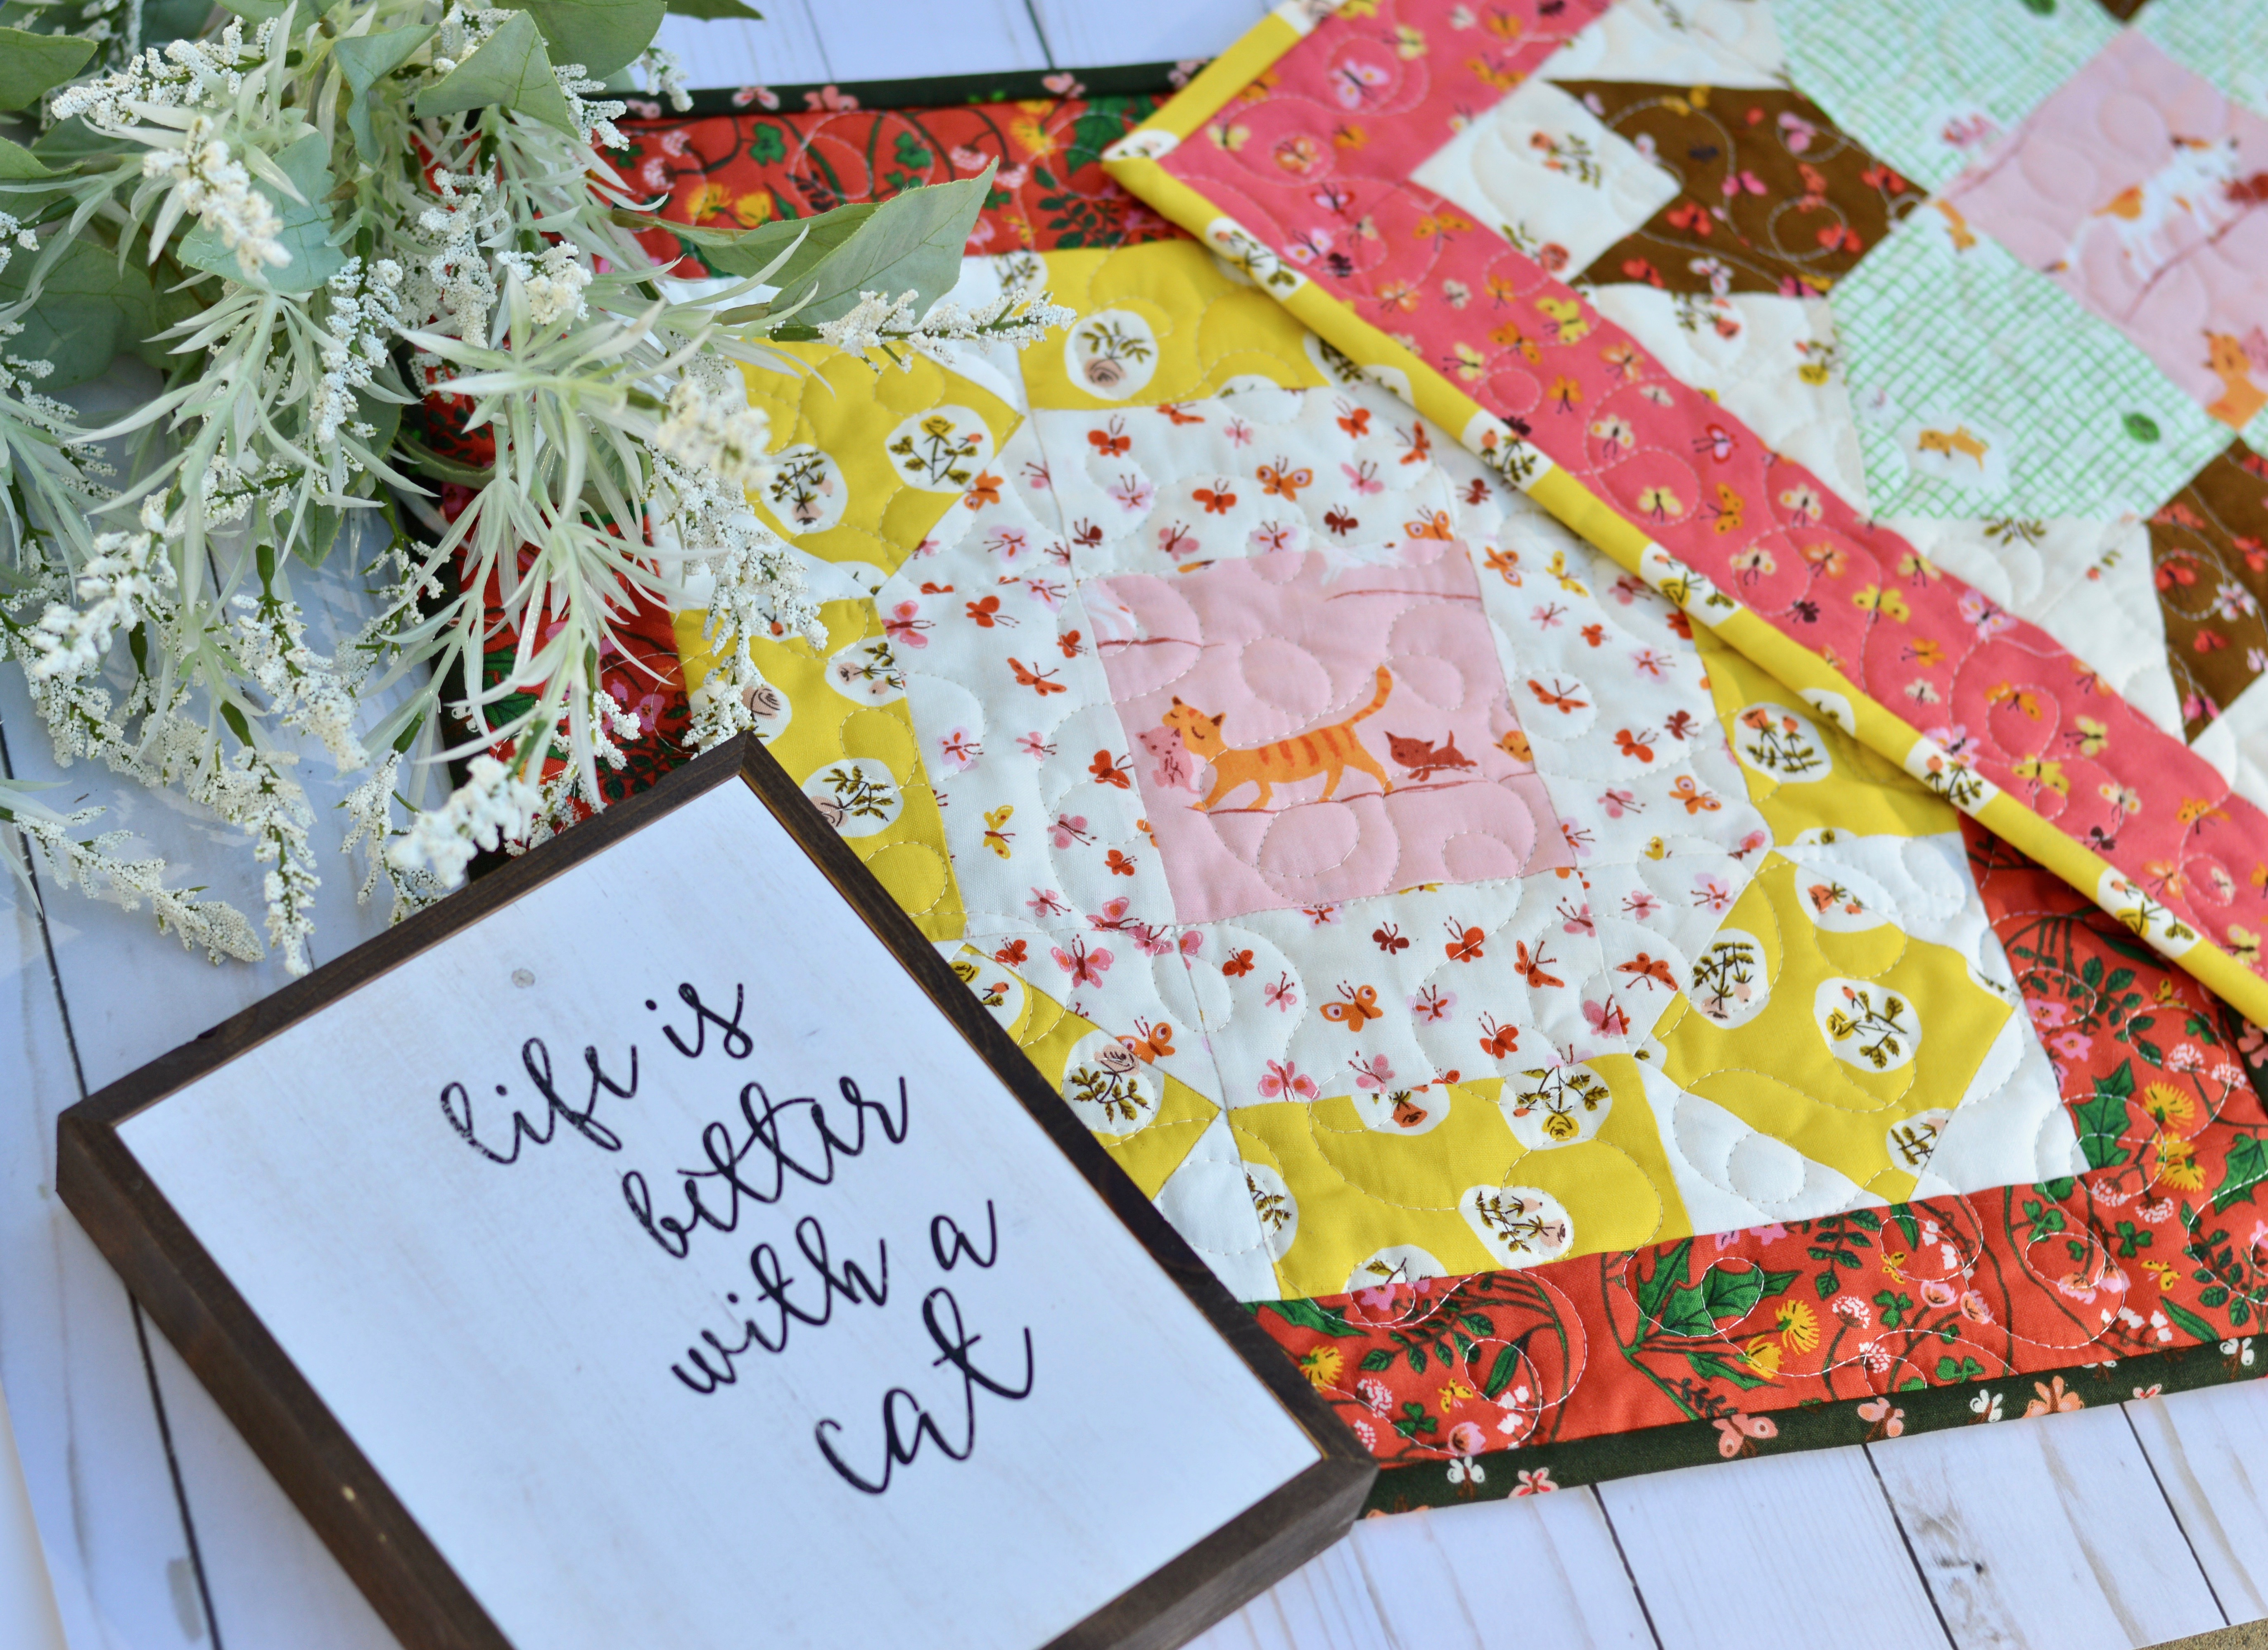 http://www.jedicraftgirl.com/wp-content/uploads/2018/10/tiger-lily-cat-quilt-block.jpg